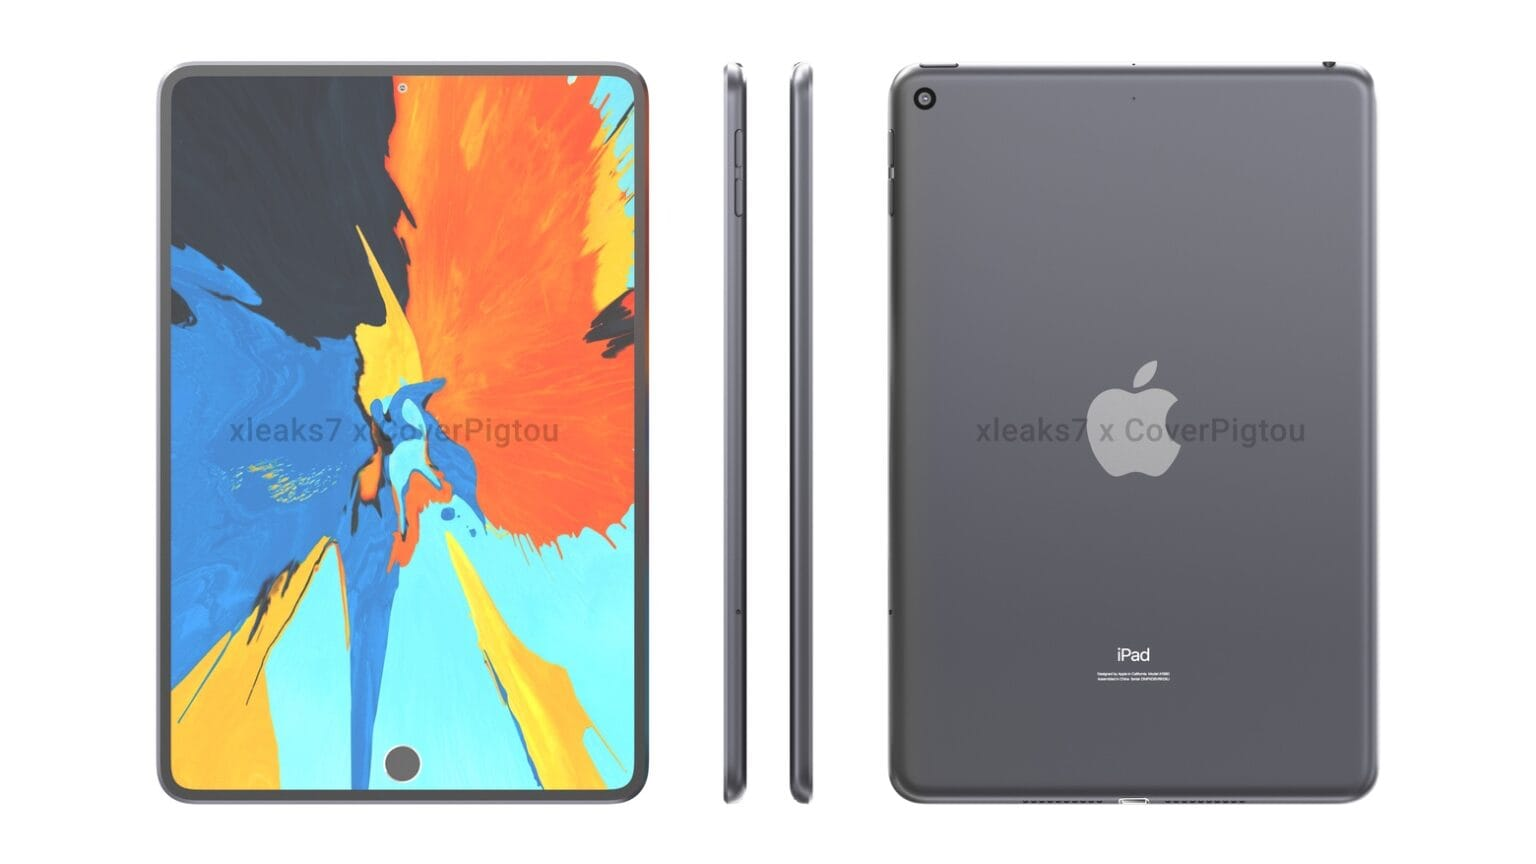 ipad mini render - to be announced at march apple event